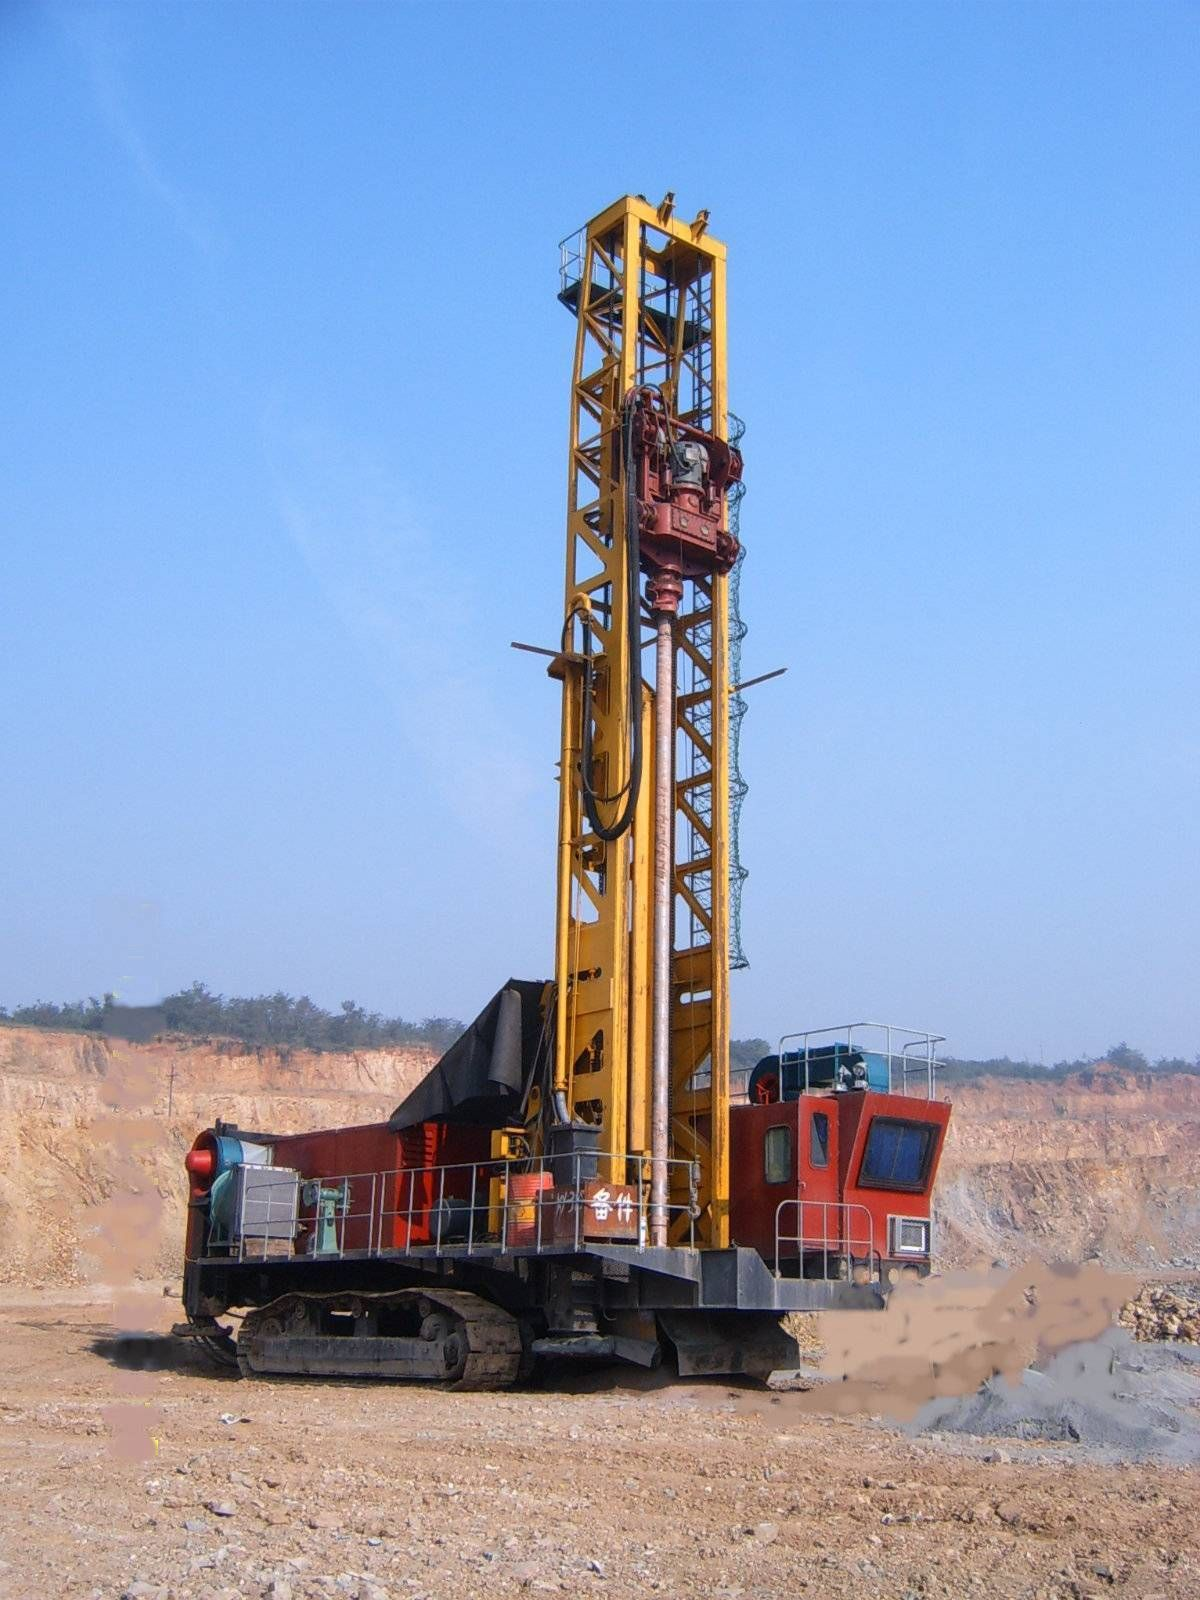 KY310A rotary blast hole drilling rig Drilling rig